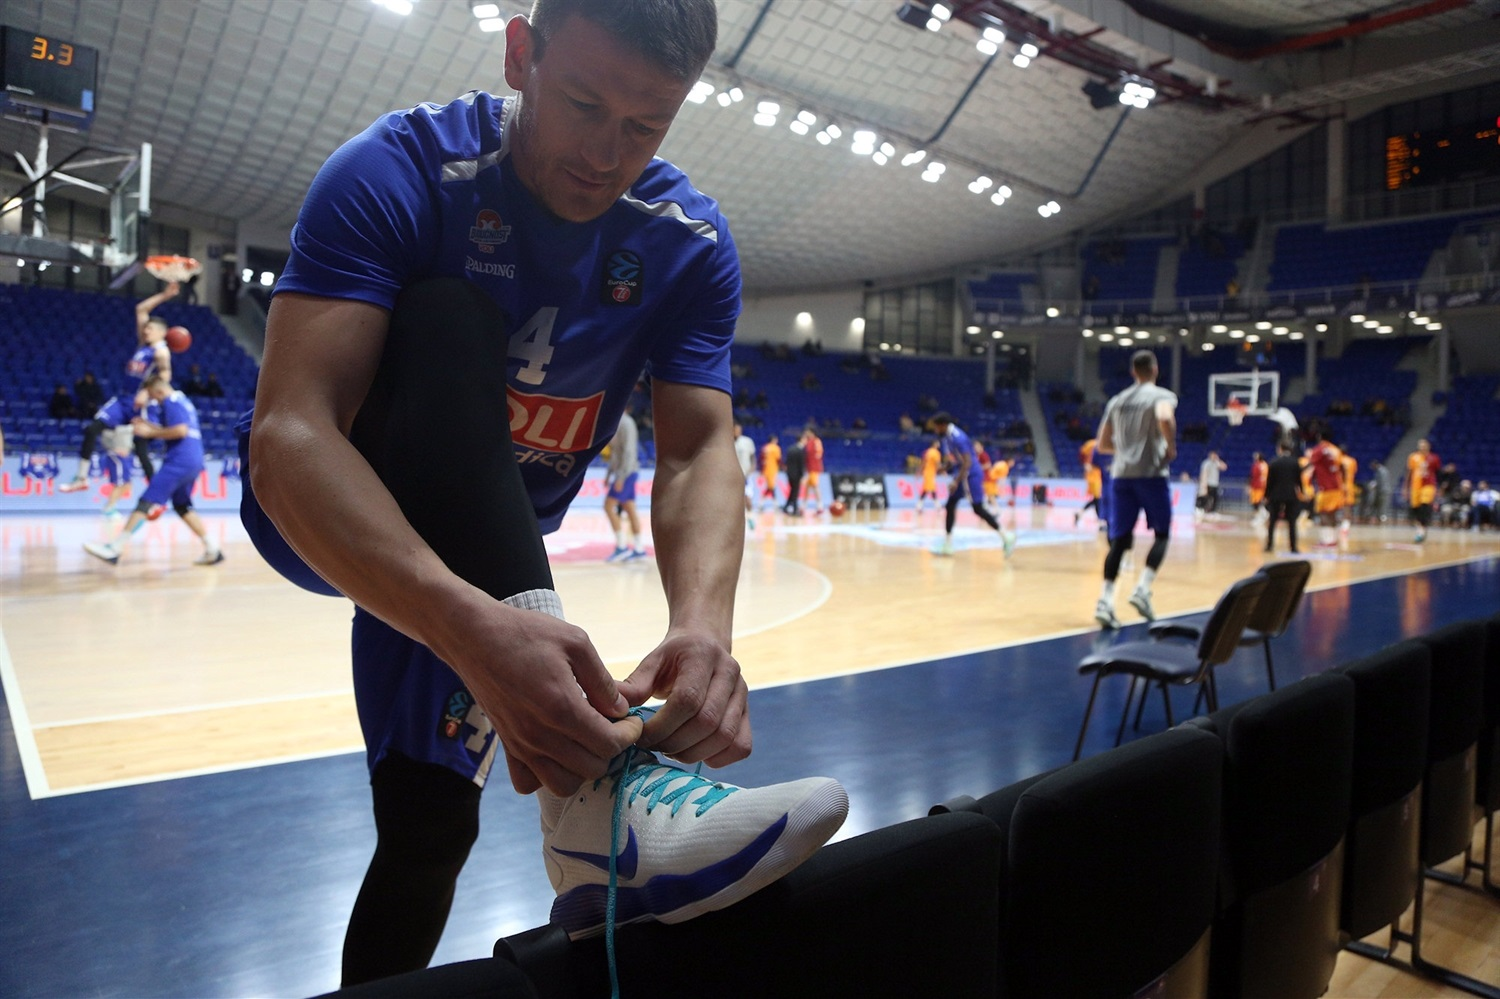 Suad Sehuvic, One Team Games - Buducnost VOLI Podgorica vs. Galatasaray Doga Sigorta Istanbul (photo Buducnost) - EC19